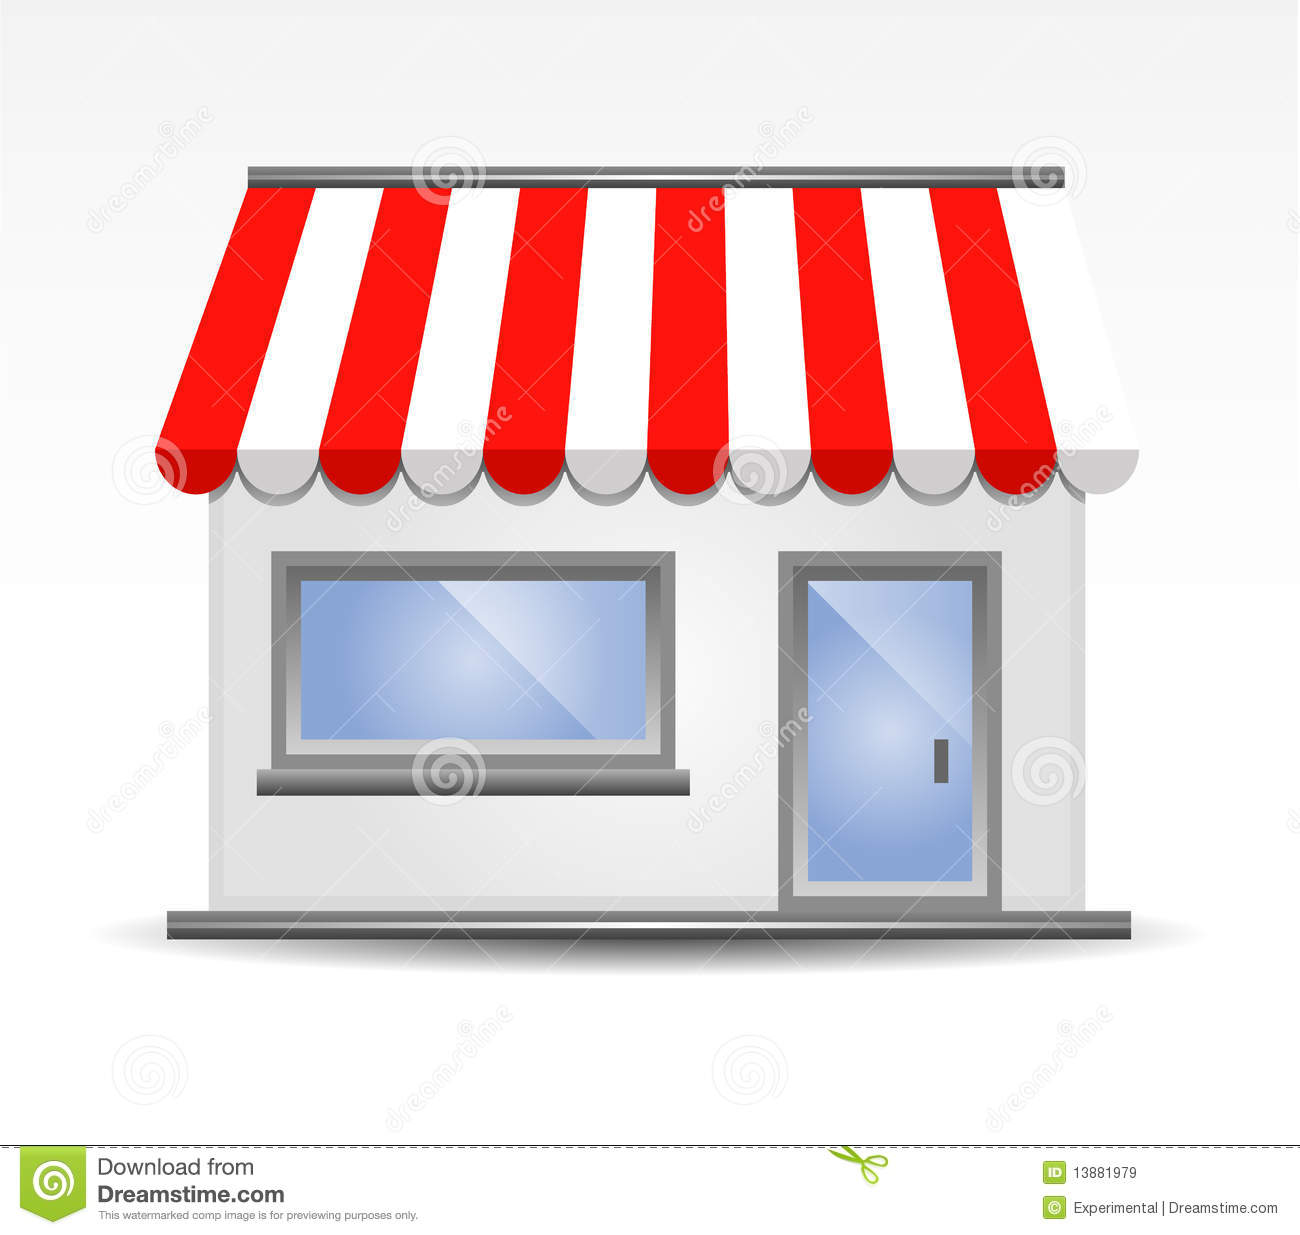 Storefront clipart #7